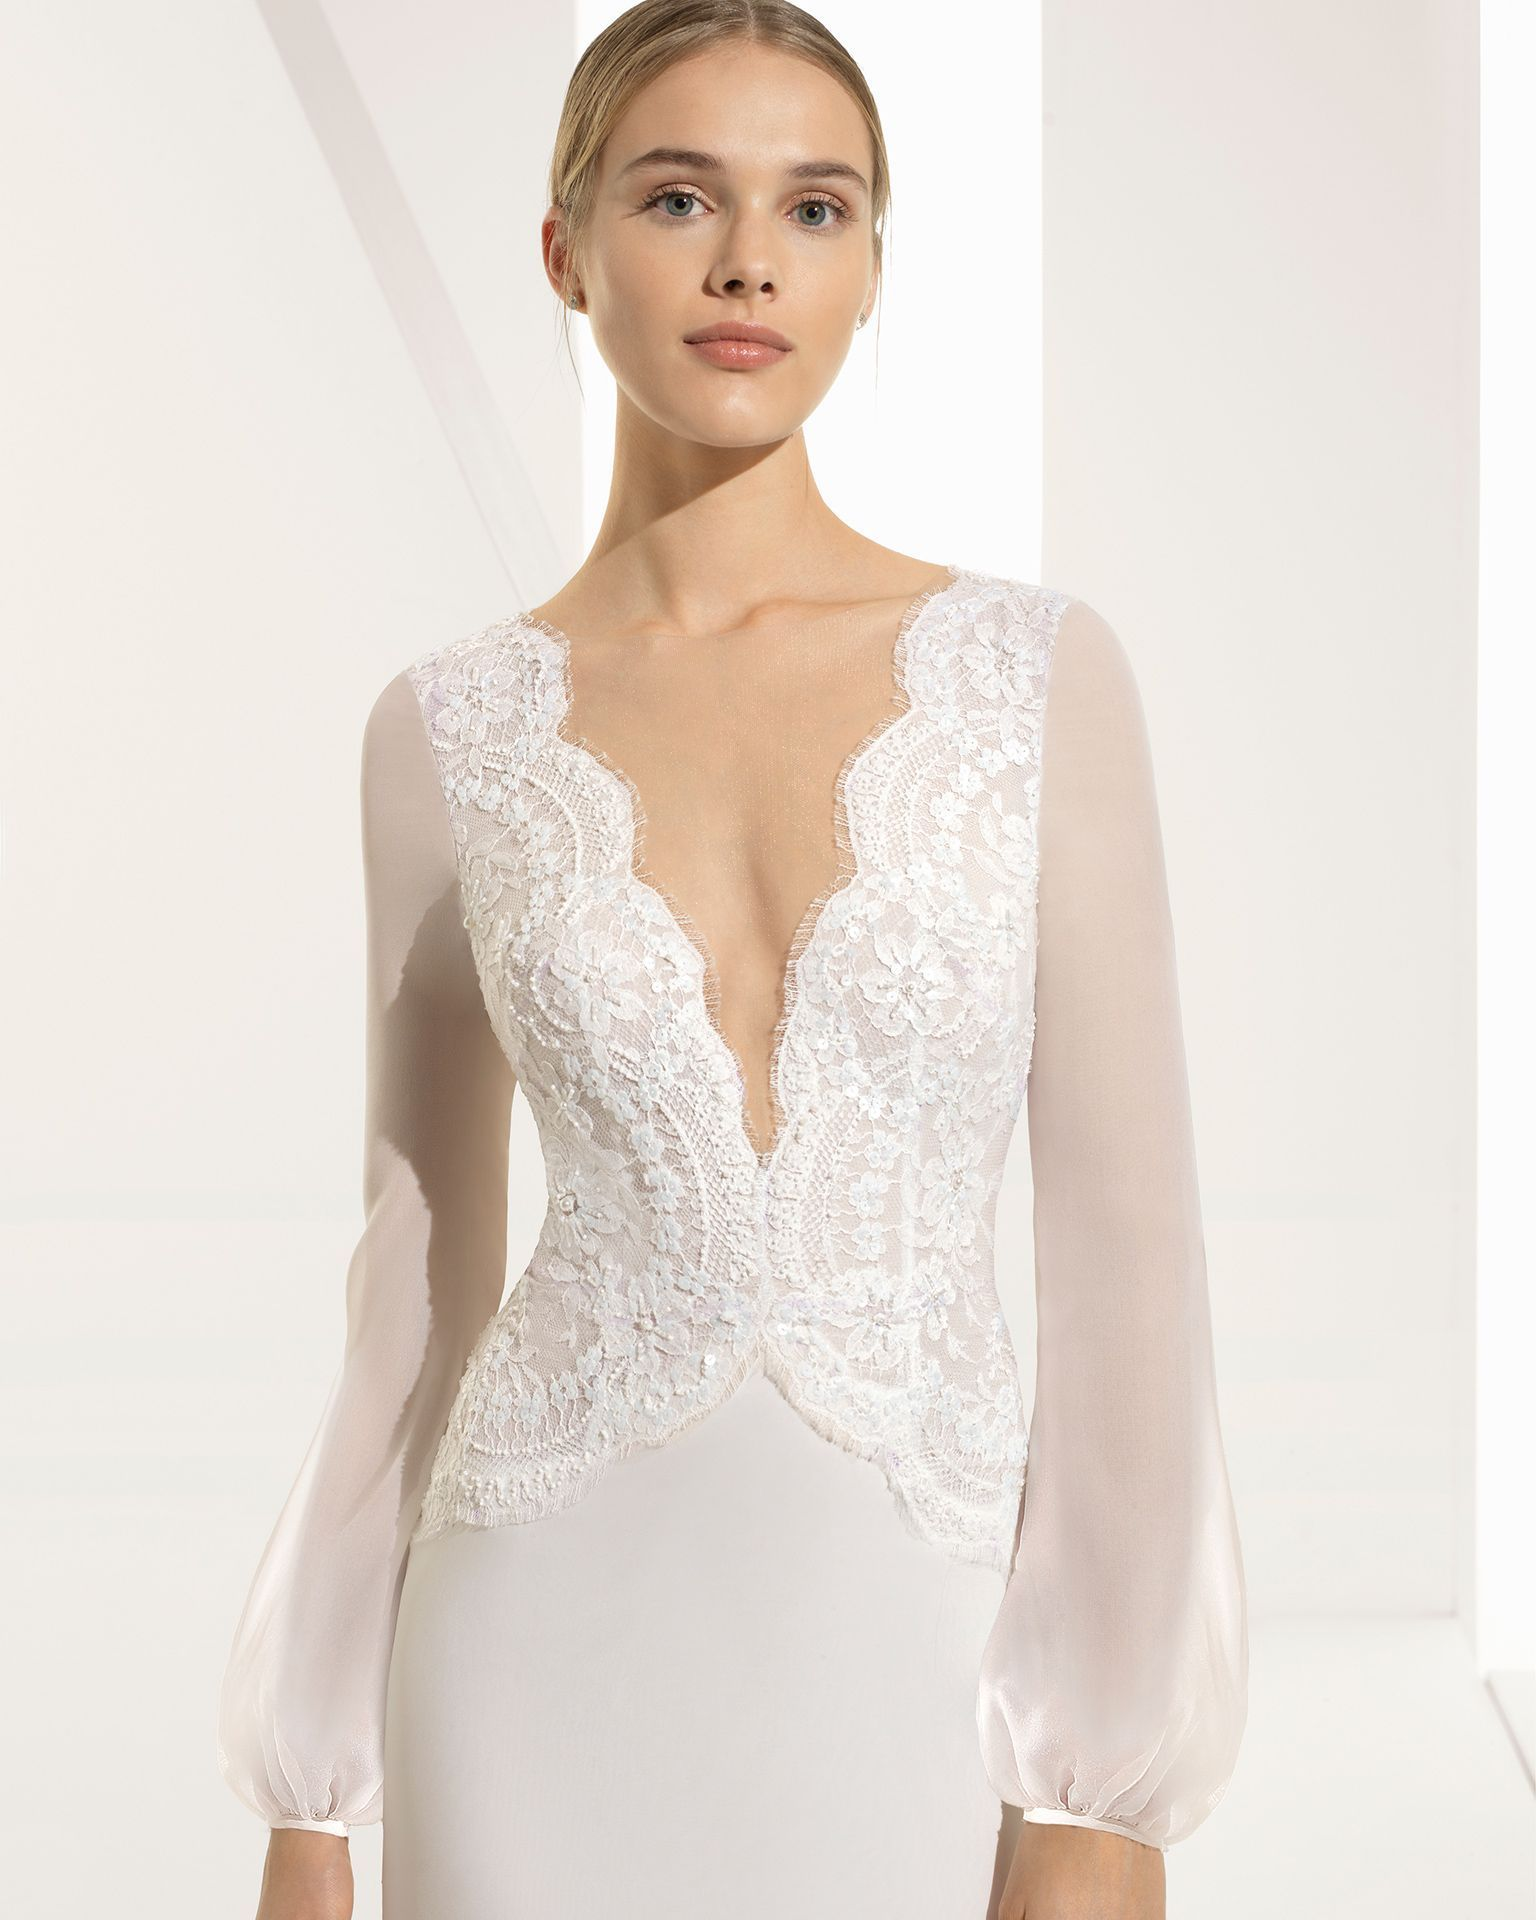 Ballgownstyle beaded lace and silk chiffon wedding dress with long